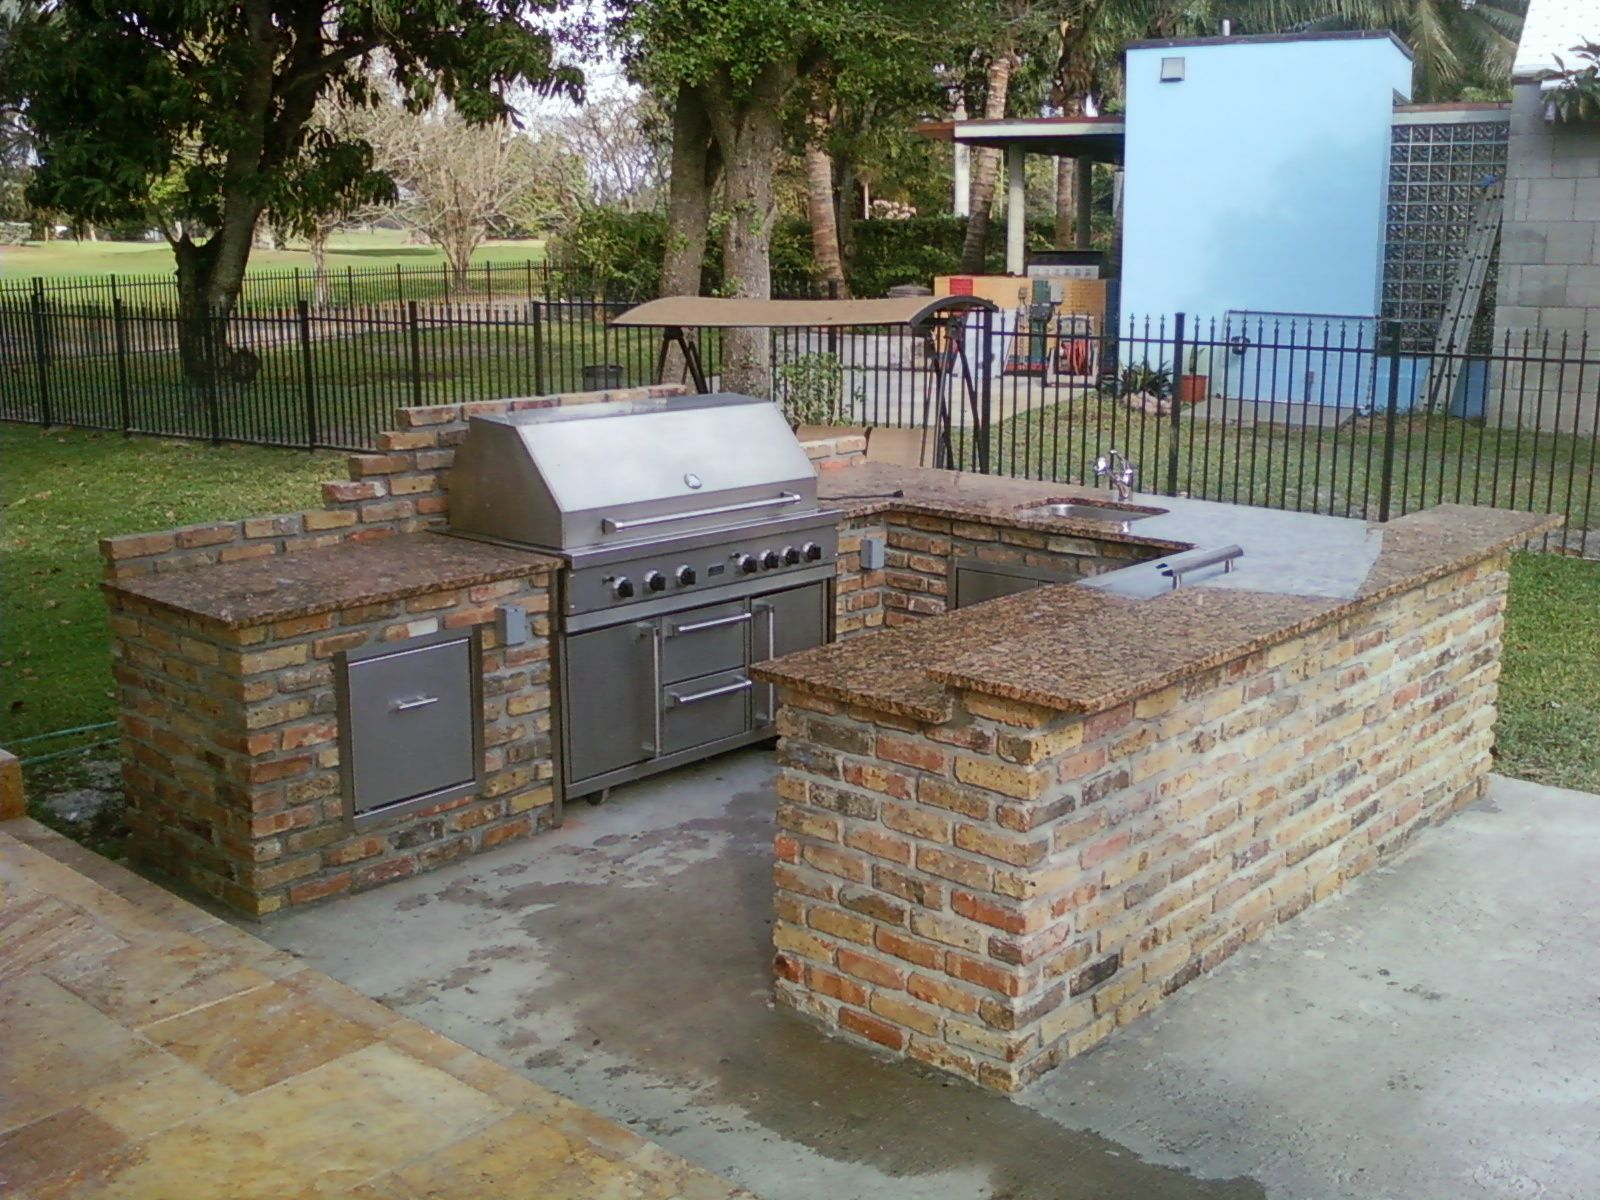 Outdoor Barbecue Kitchen Designs Design For Outdoor Kitchens Bbq Grill Islands Outdoor Kitchen